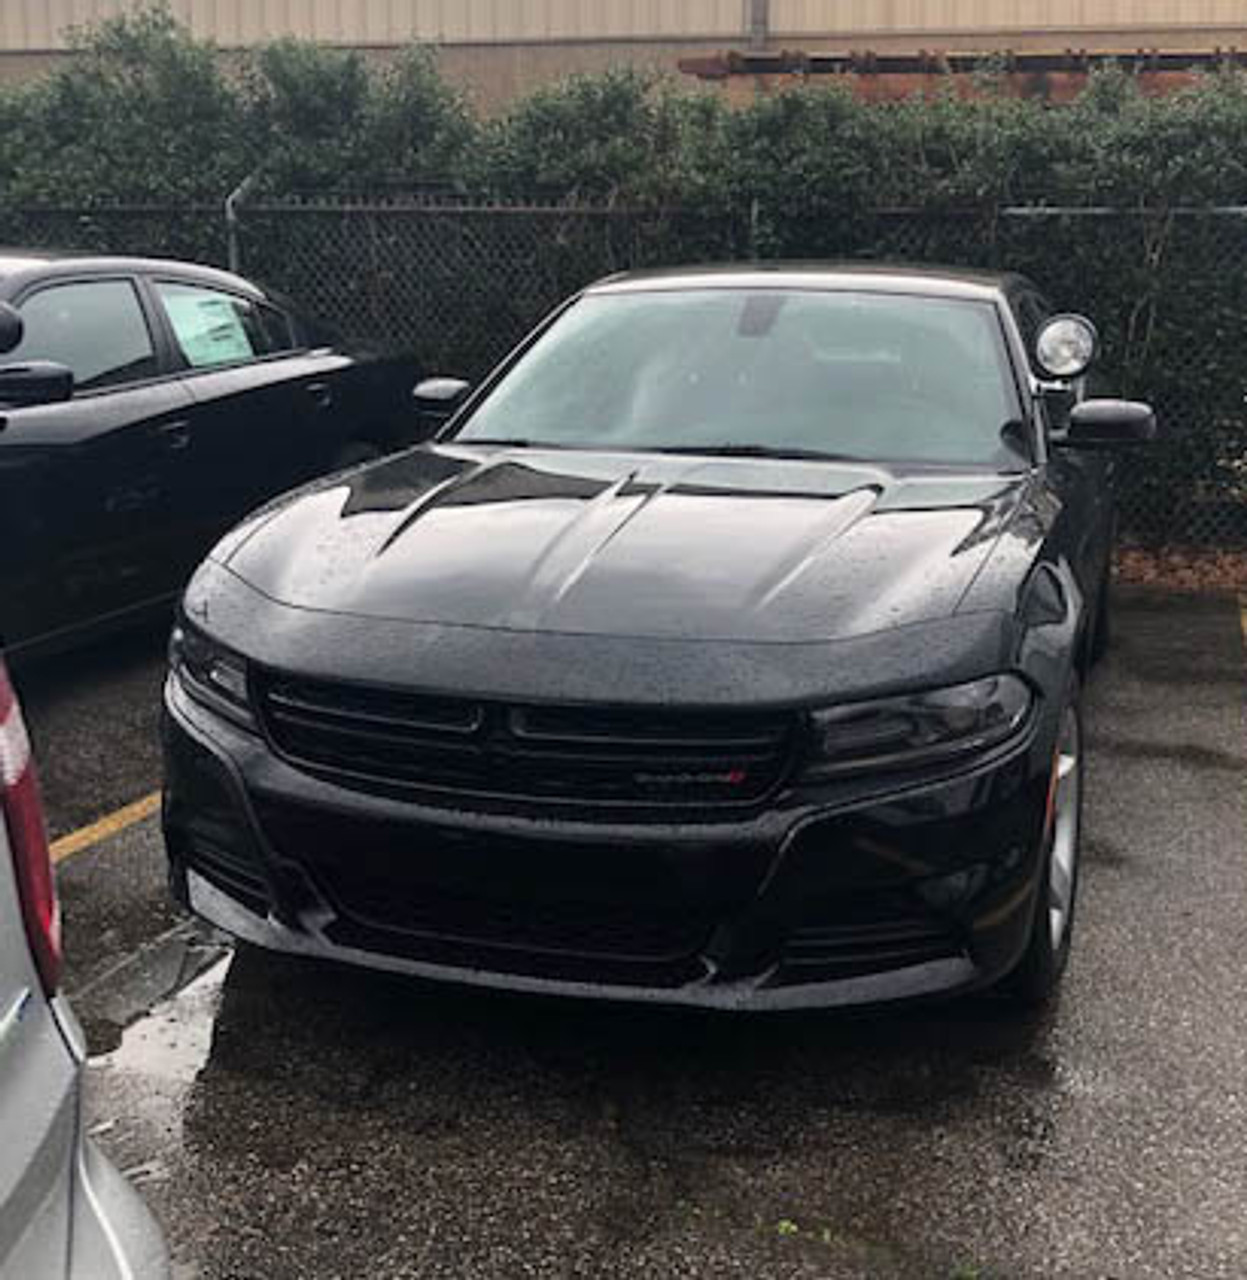 New 2019 Black Dodge Charger V6 2WD, ready to be built as a Slick-Top Patrol Package Police Pursuit Car,  choose any color LED Lights, + Delivery